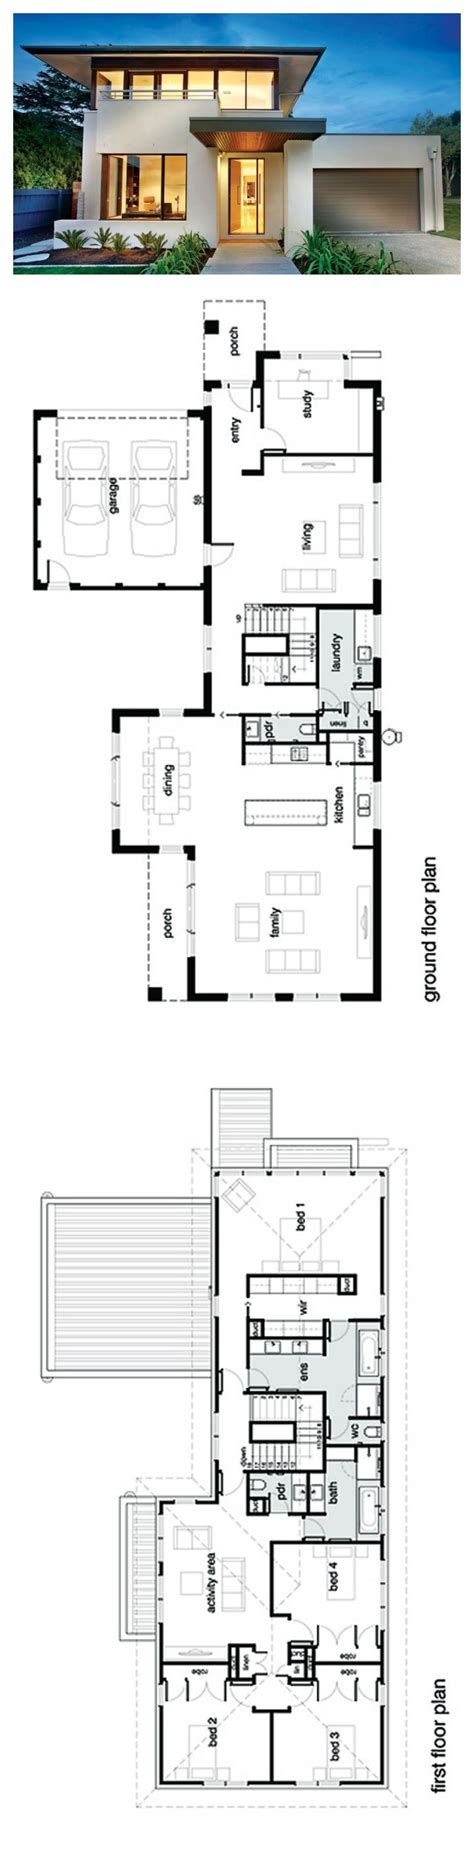 Modernist House Plans The 25 Best Ideas About Modern House Plans On Modern House Floor Plans Modern